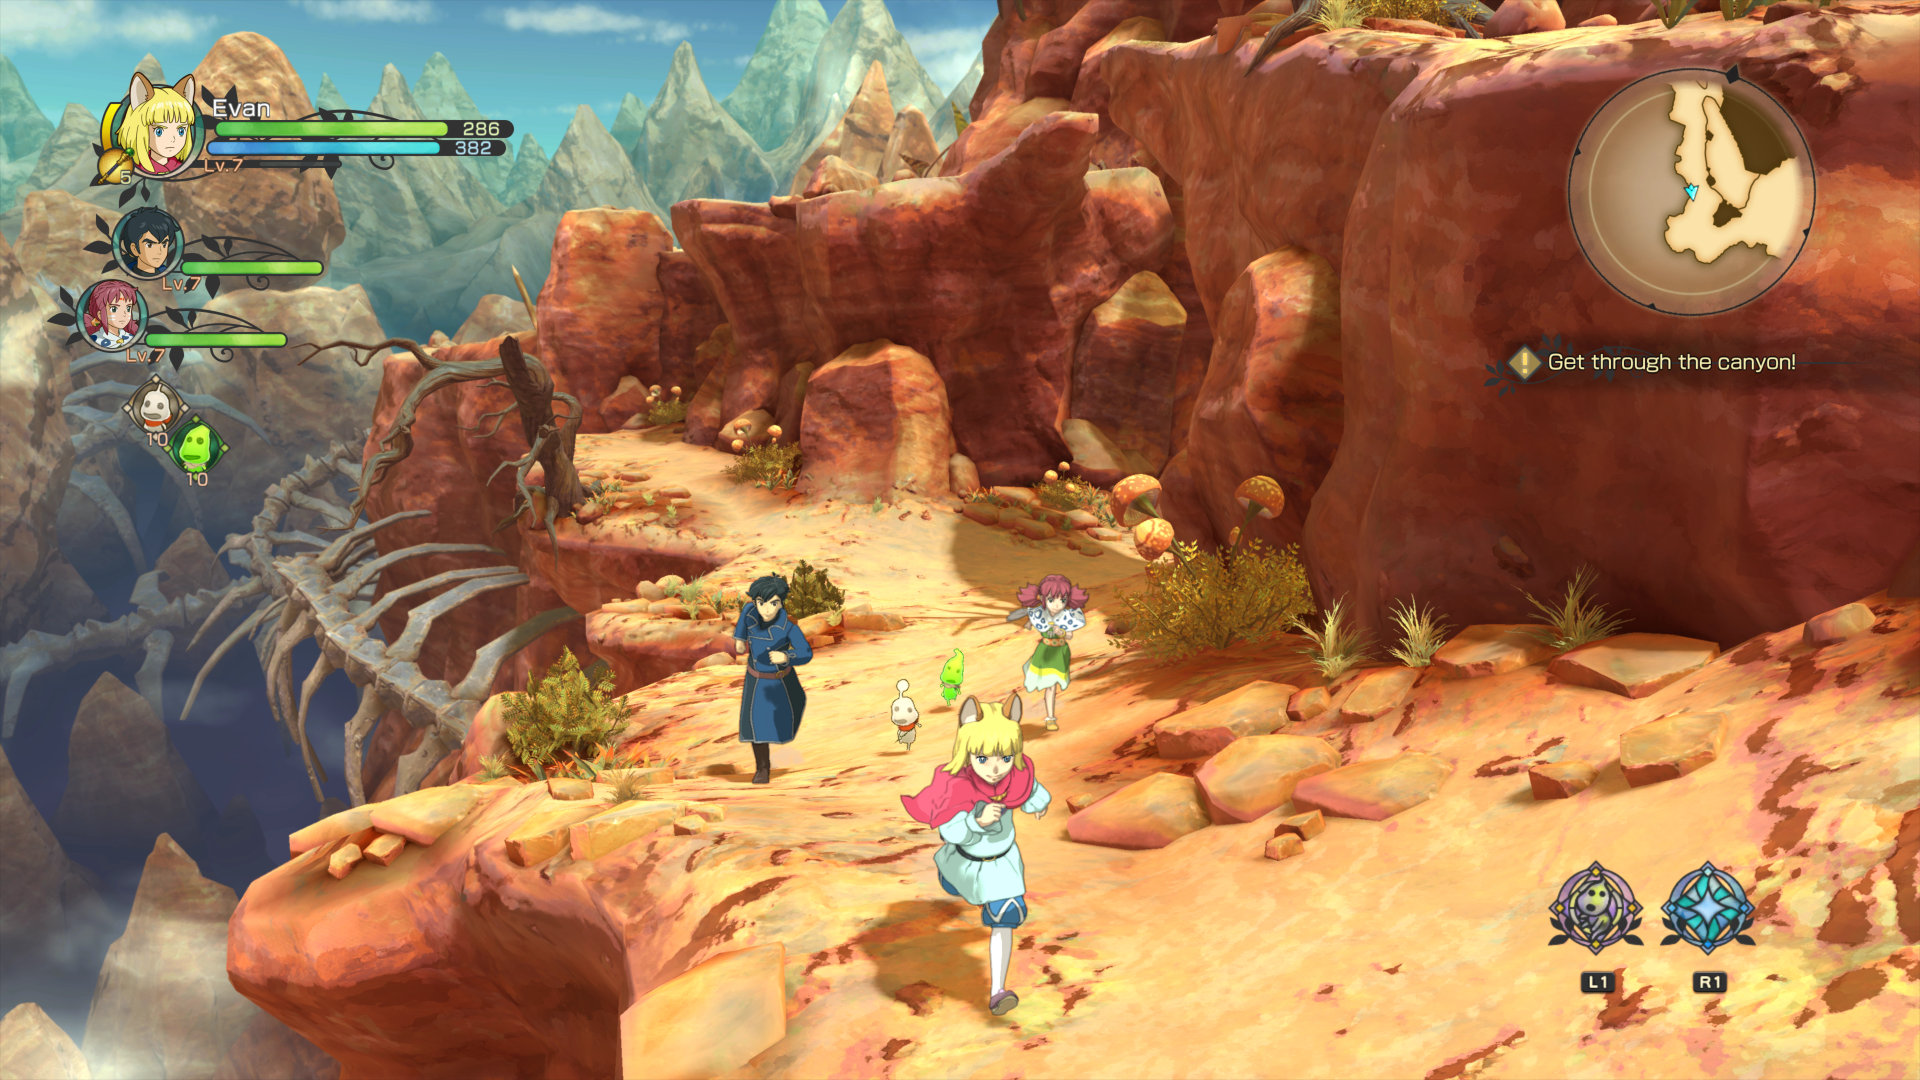 ni no kuni 2 revenant kingdom screen 06 ps4 eu 12dec16 - جديد لعبة Ni No Kuni II: Revenant Kingdom 2018